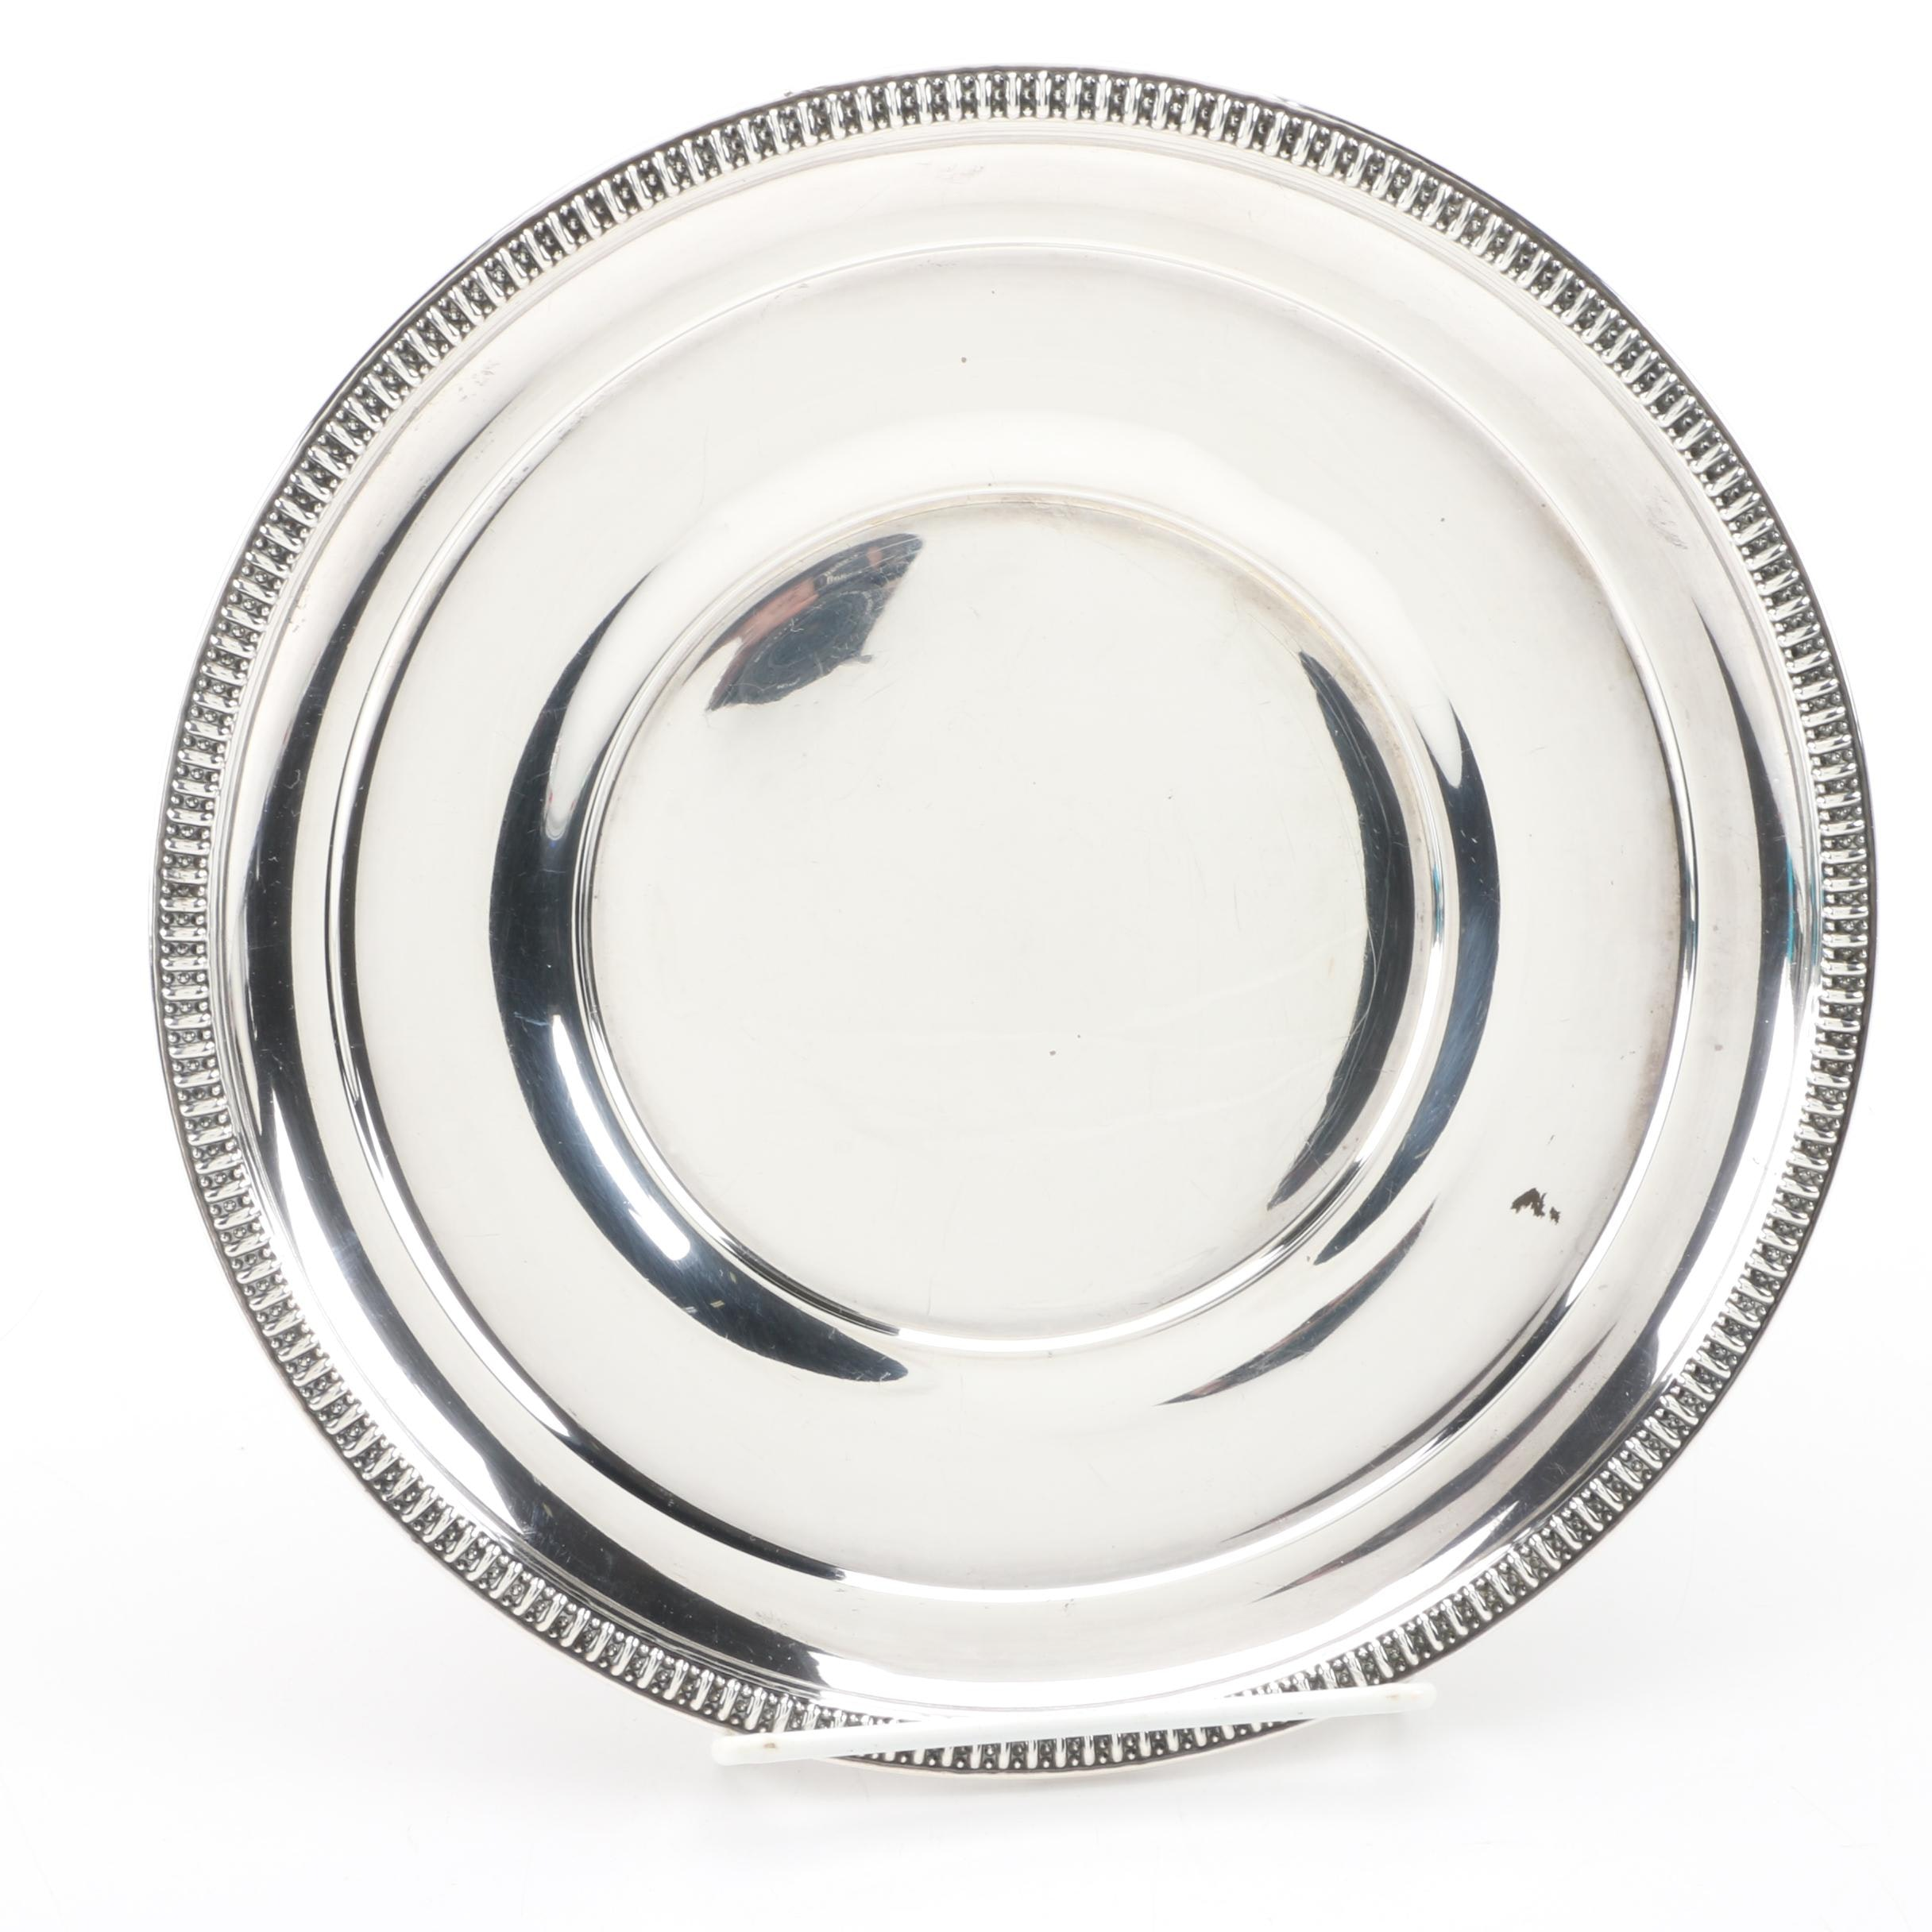 Wm. Rogers Mfg. Co. Sterling Silver Salad Plate